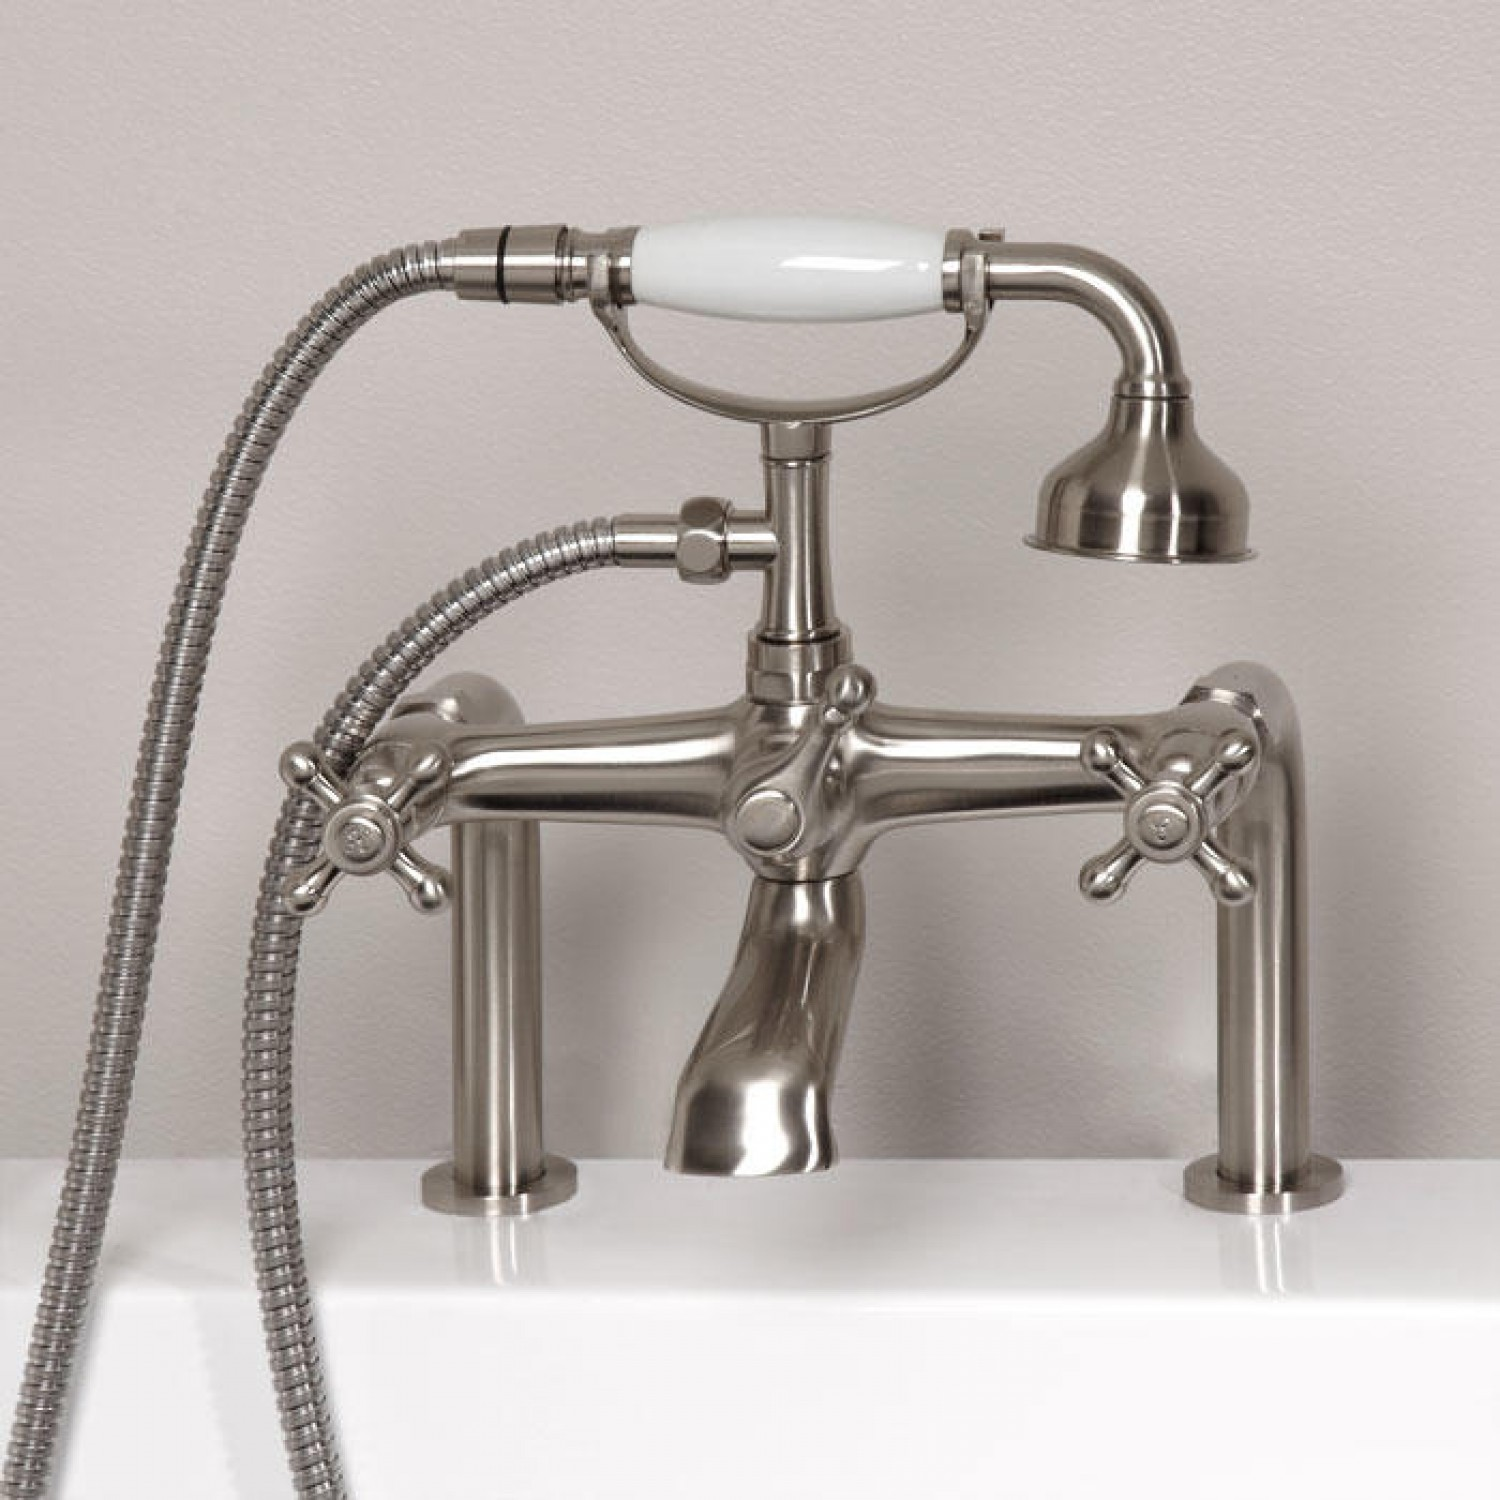 Deck mount tub faucet hand shower